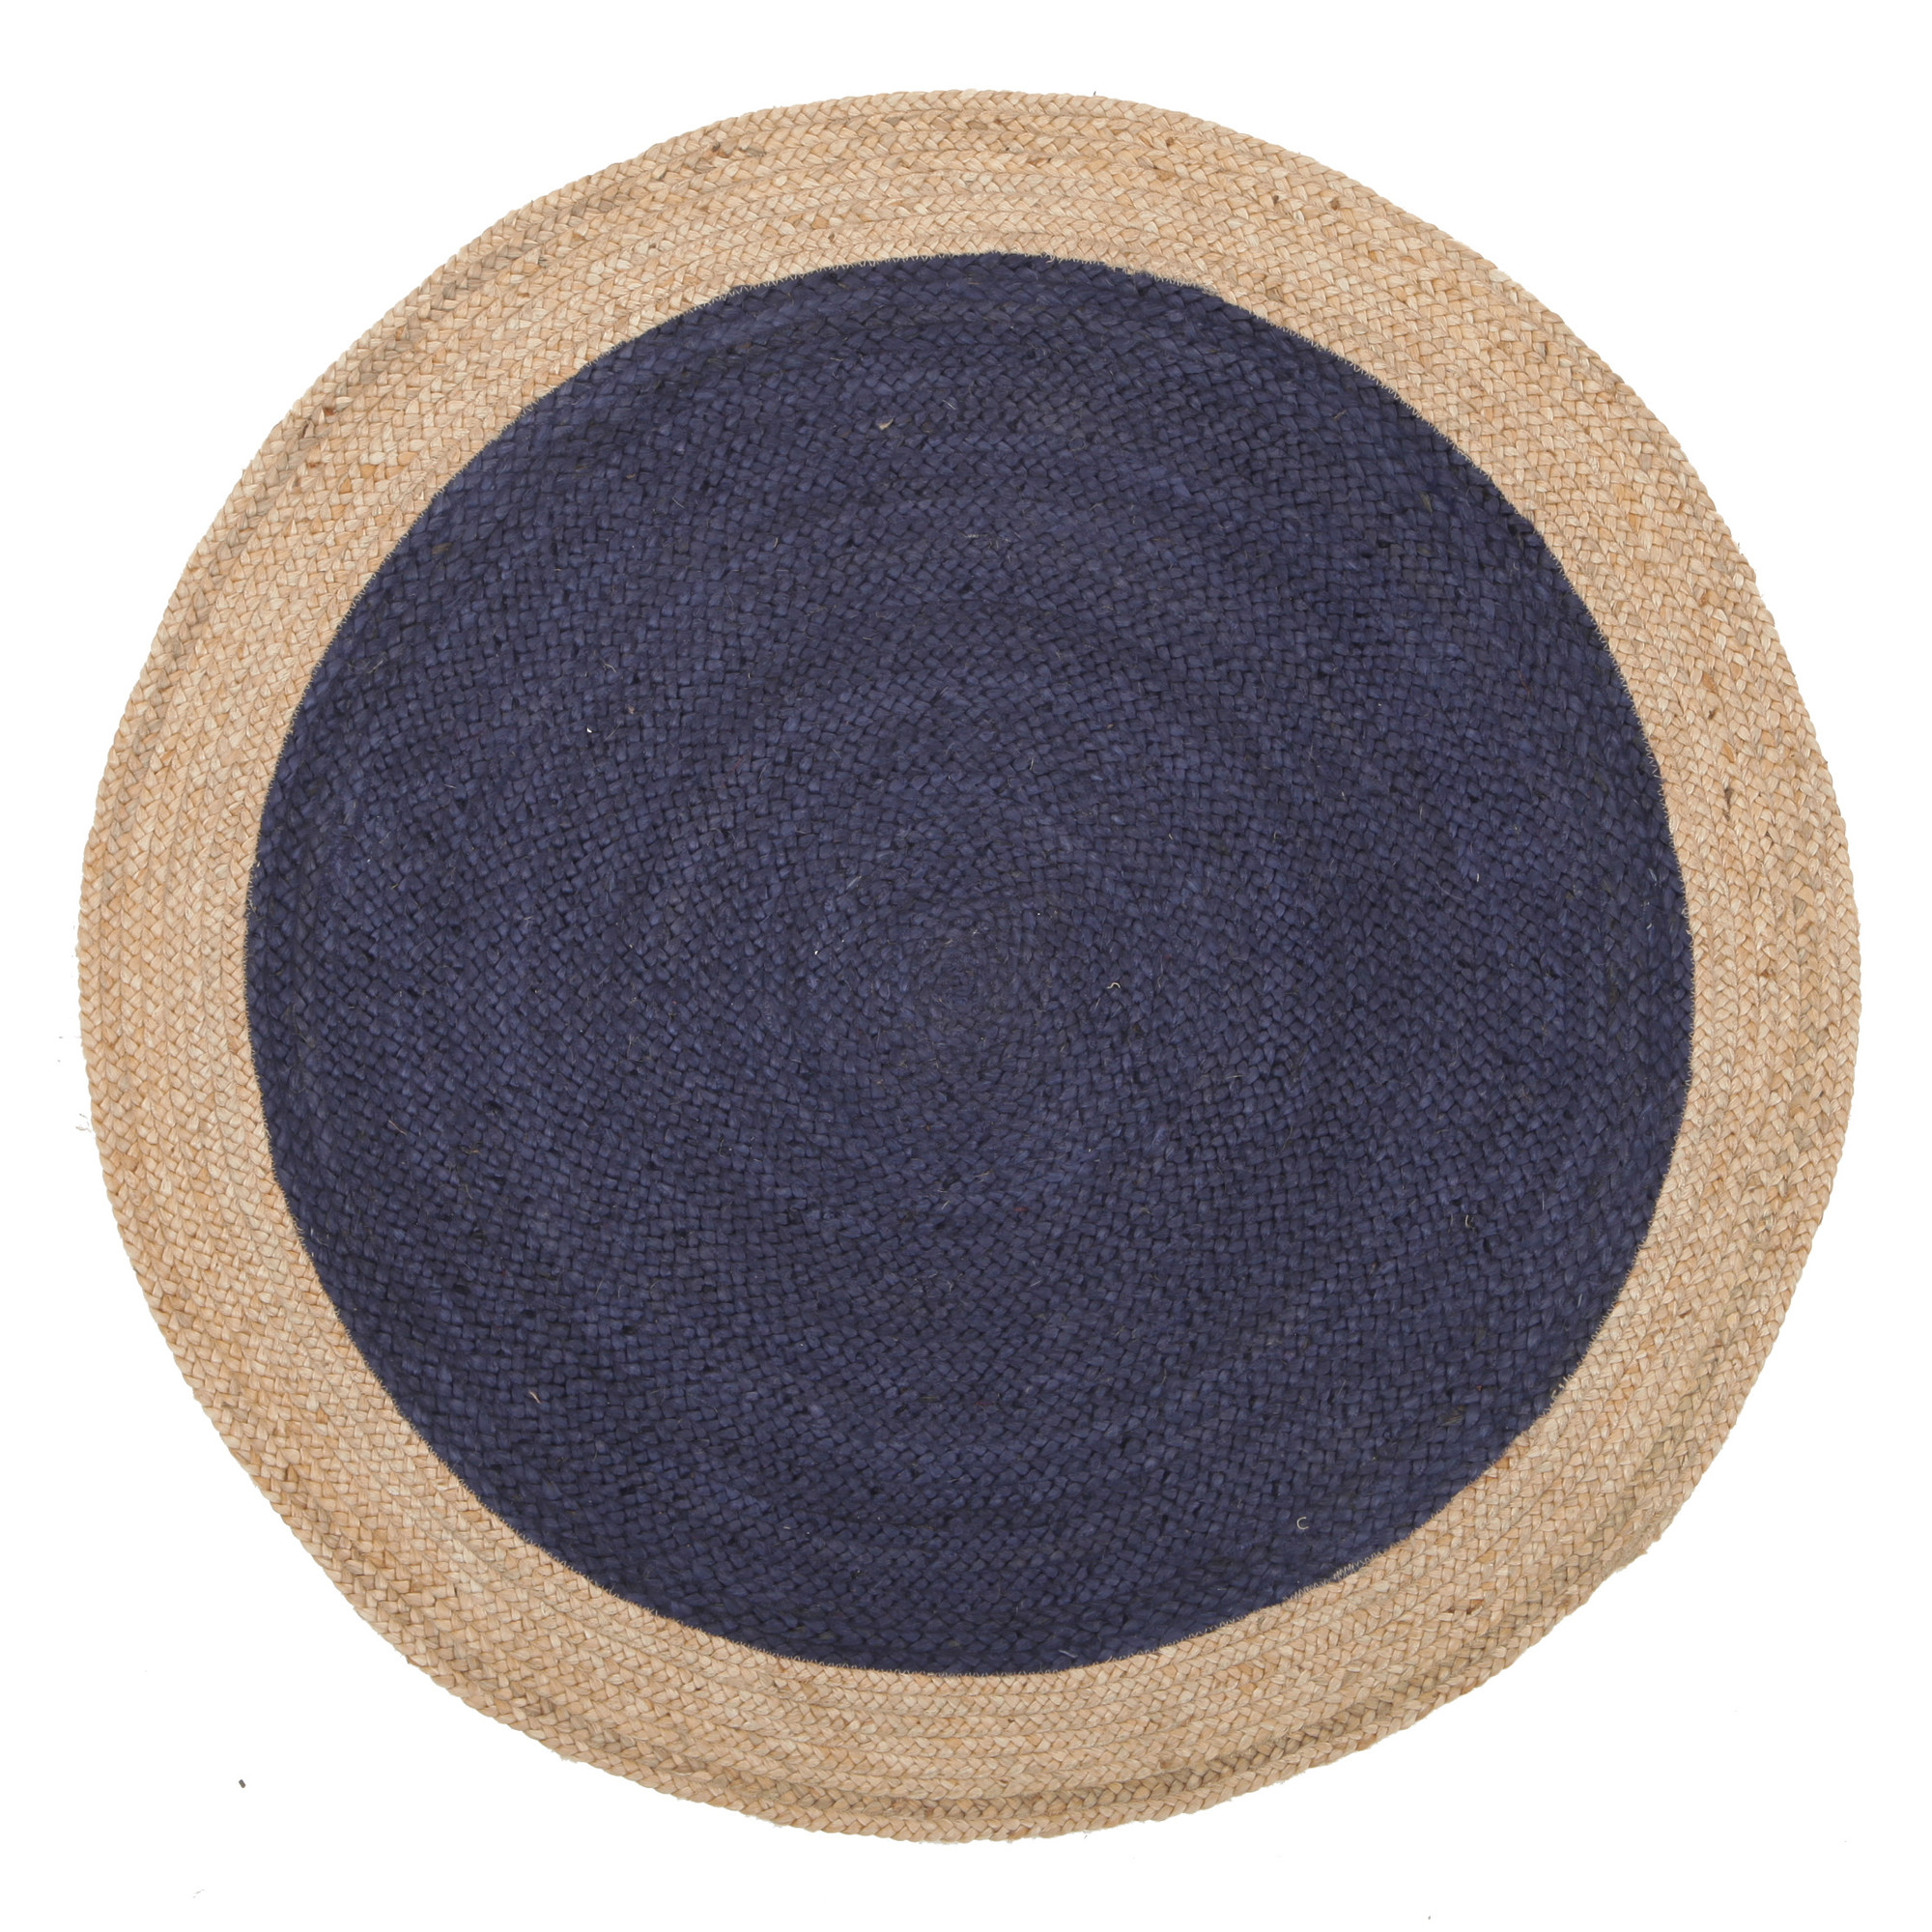 Network Jasmine Round Navy Rug & Reviews | Temple & Webster